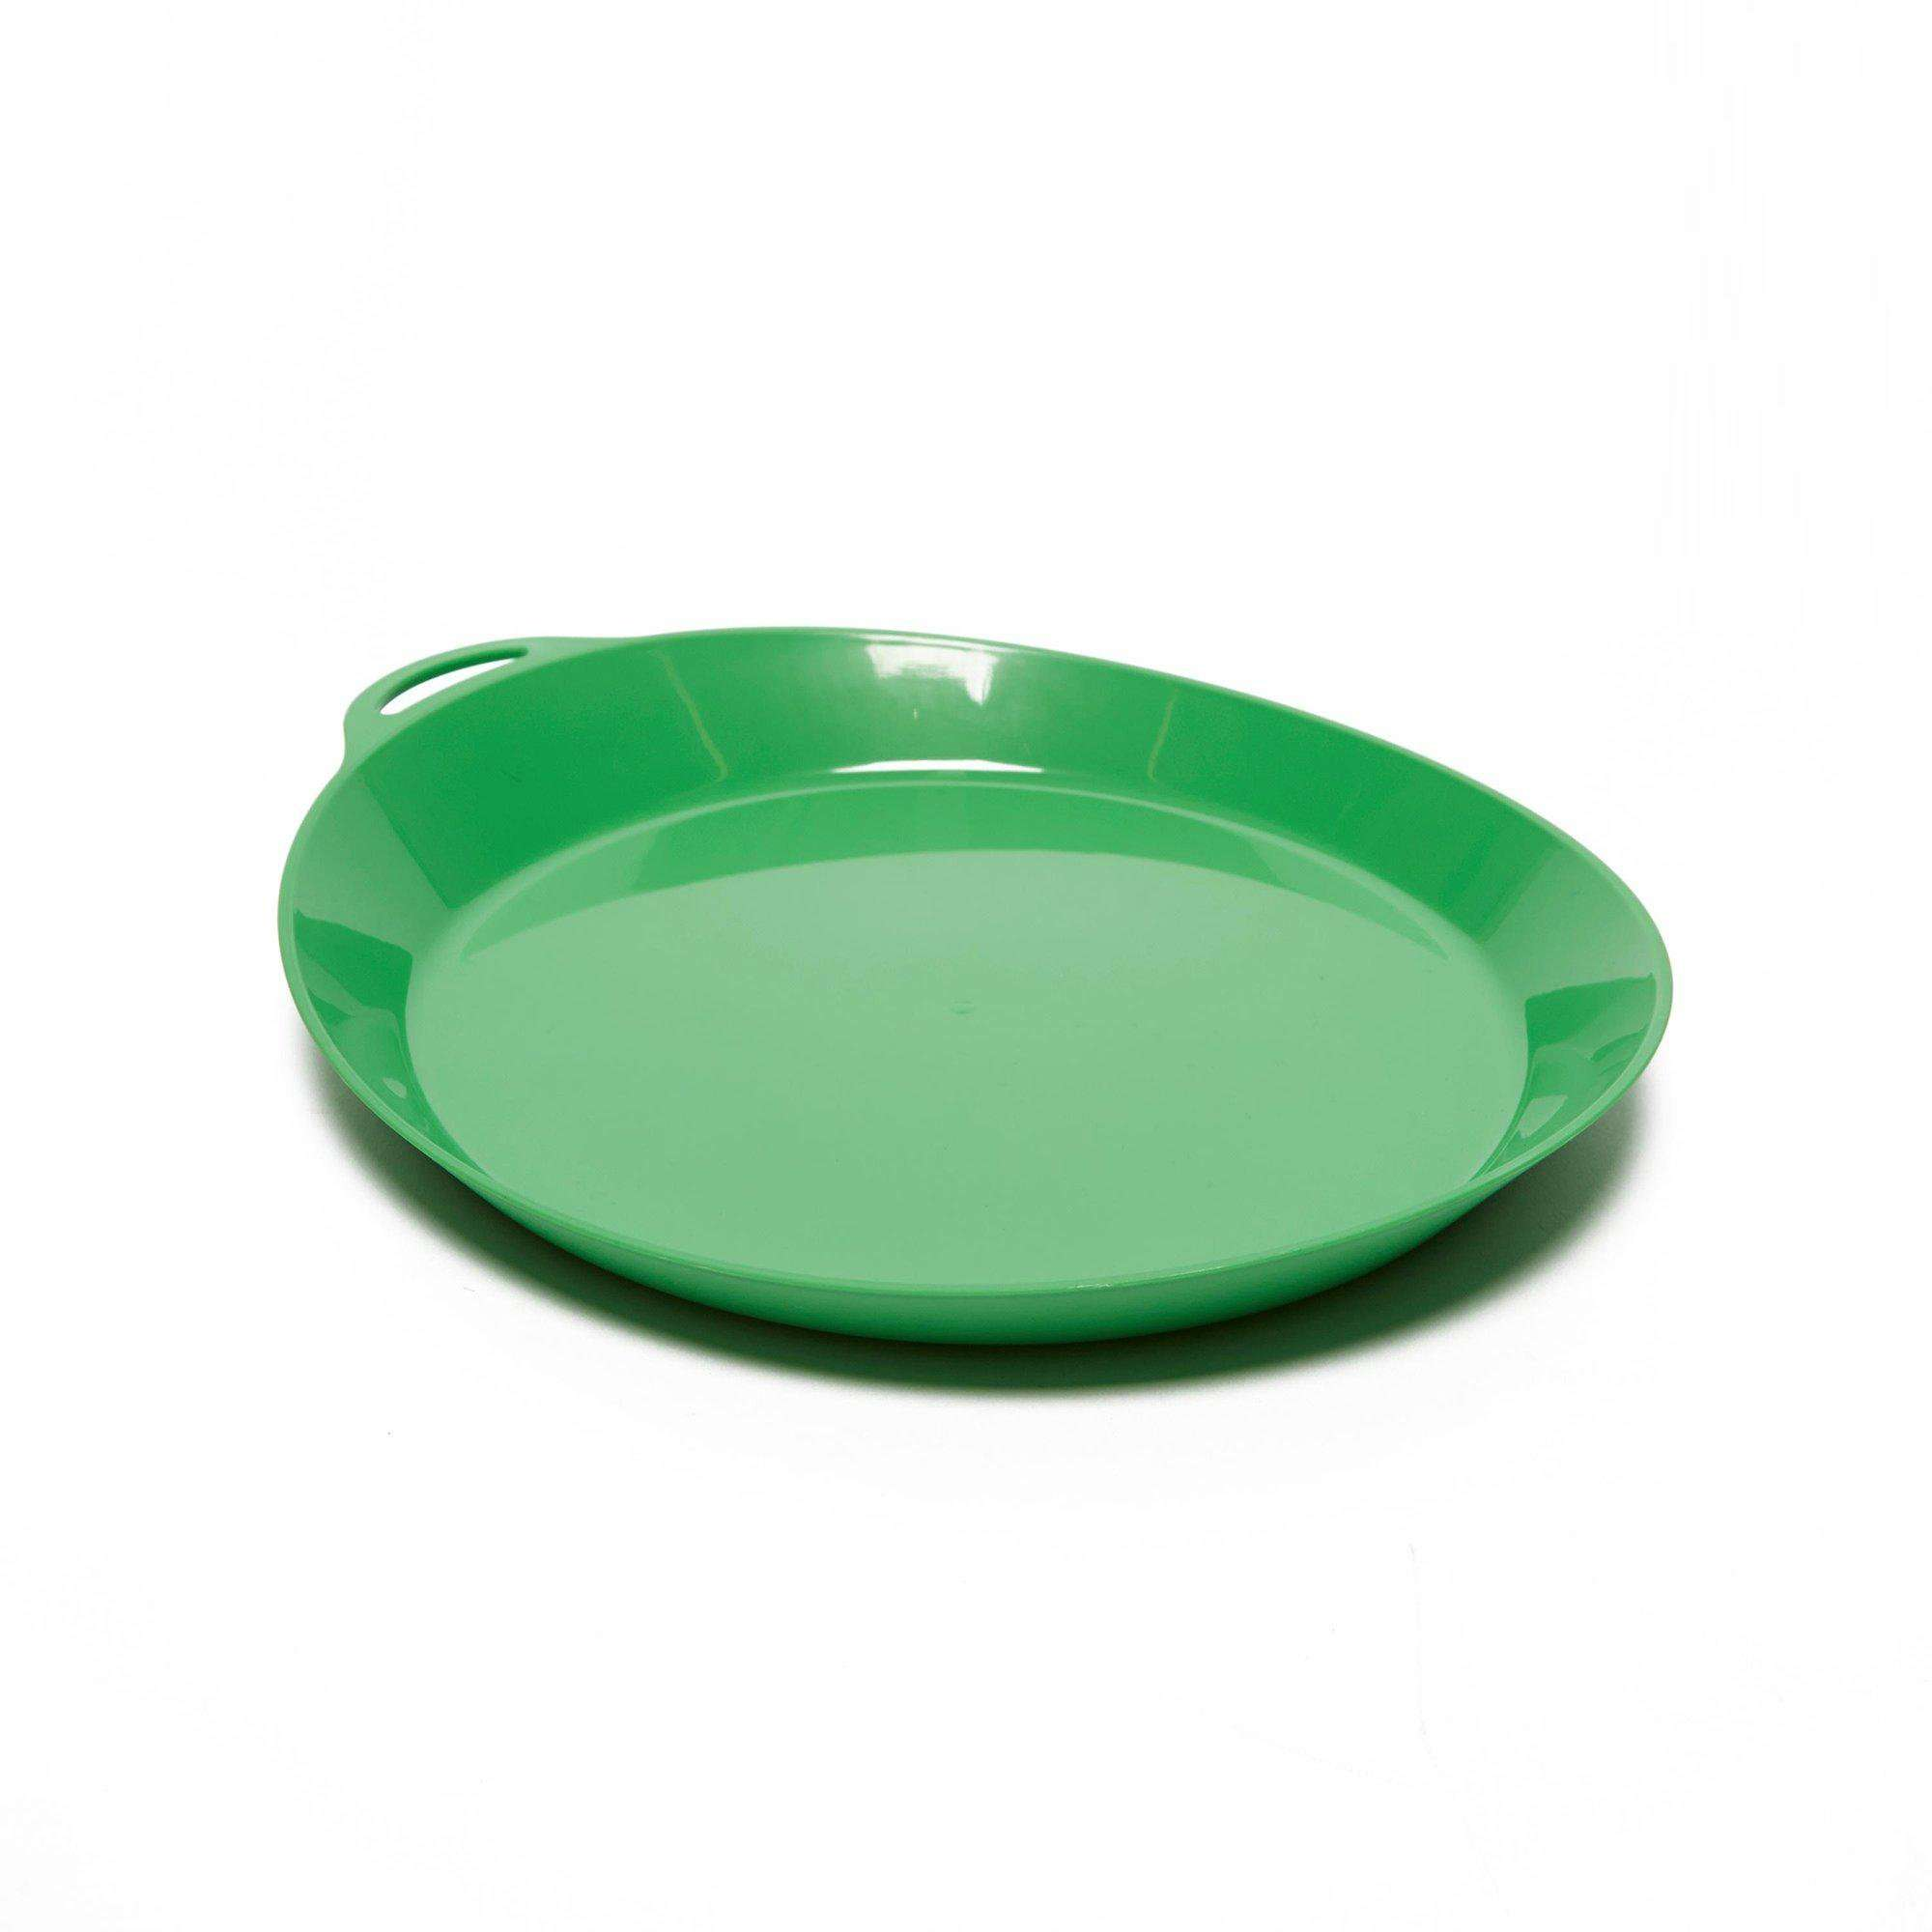 LIFEVENTURE Ellipse Plate